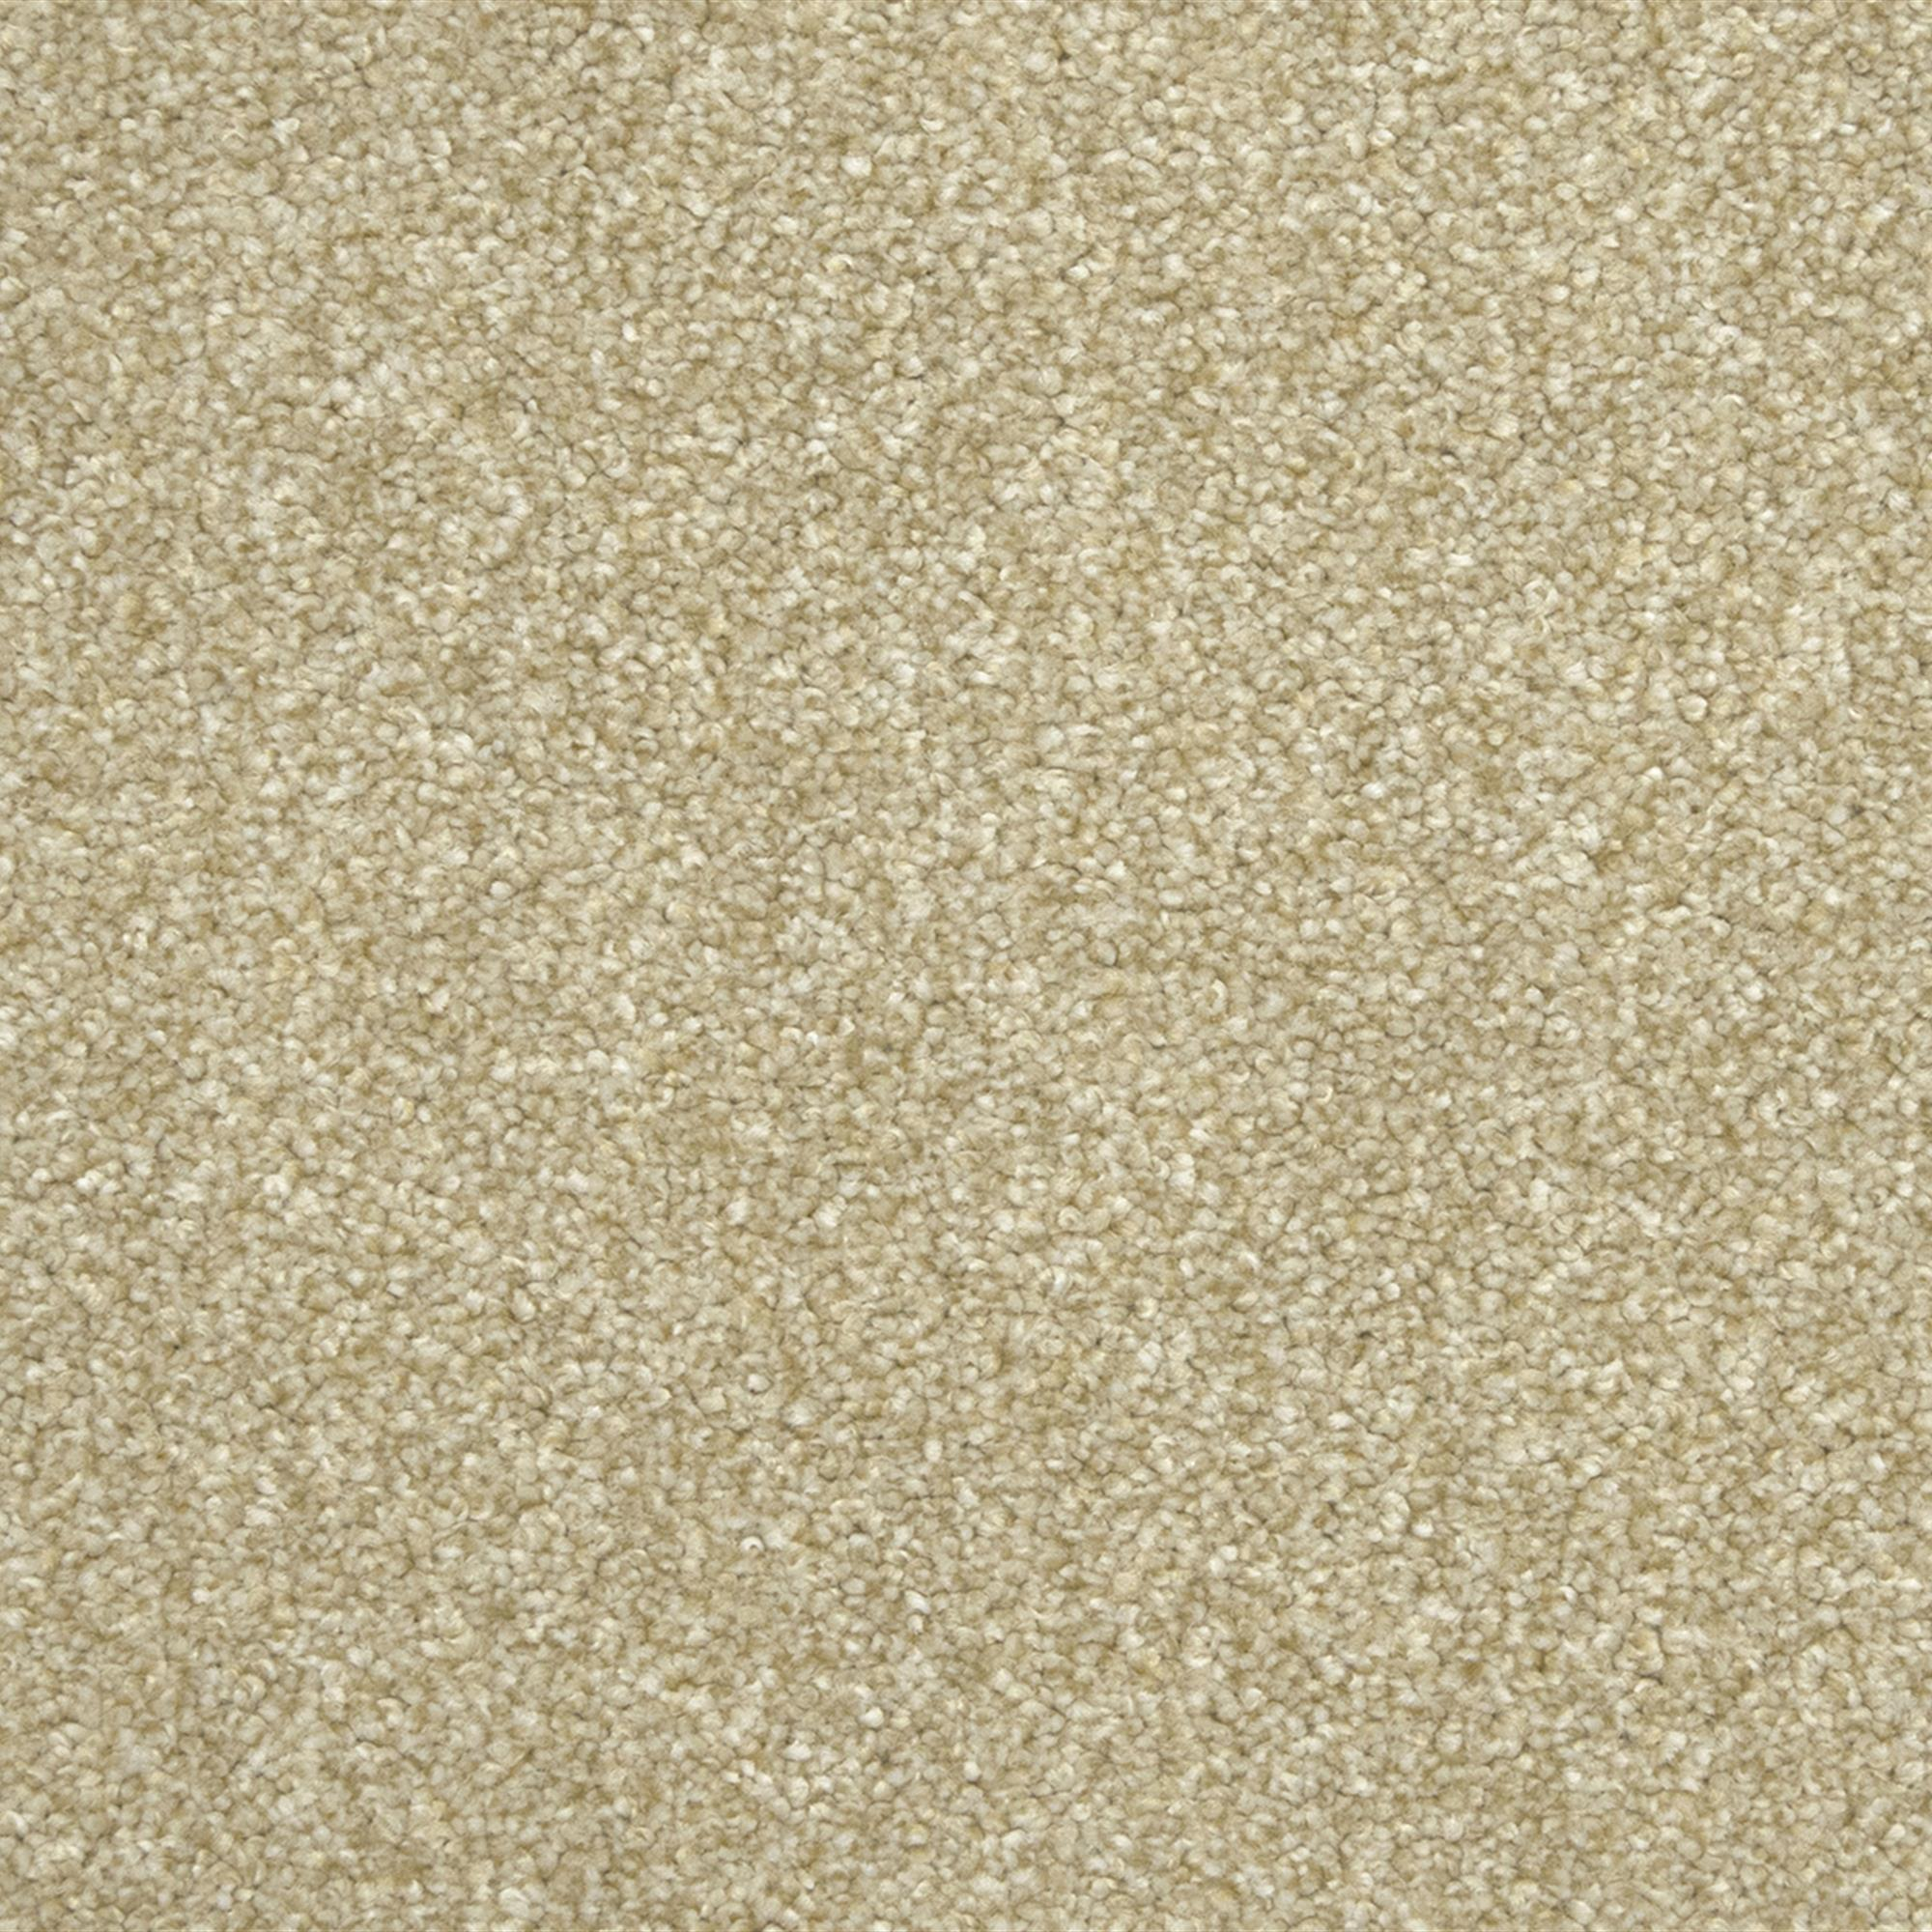 Vivendi Equinox Carpet, 35 Oatcoak, swatch